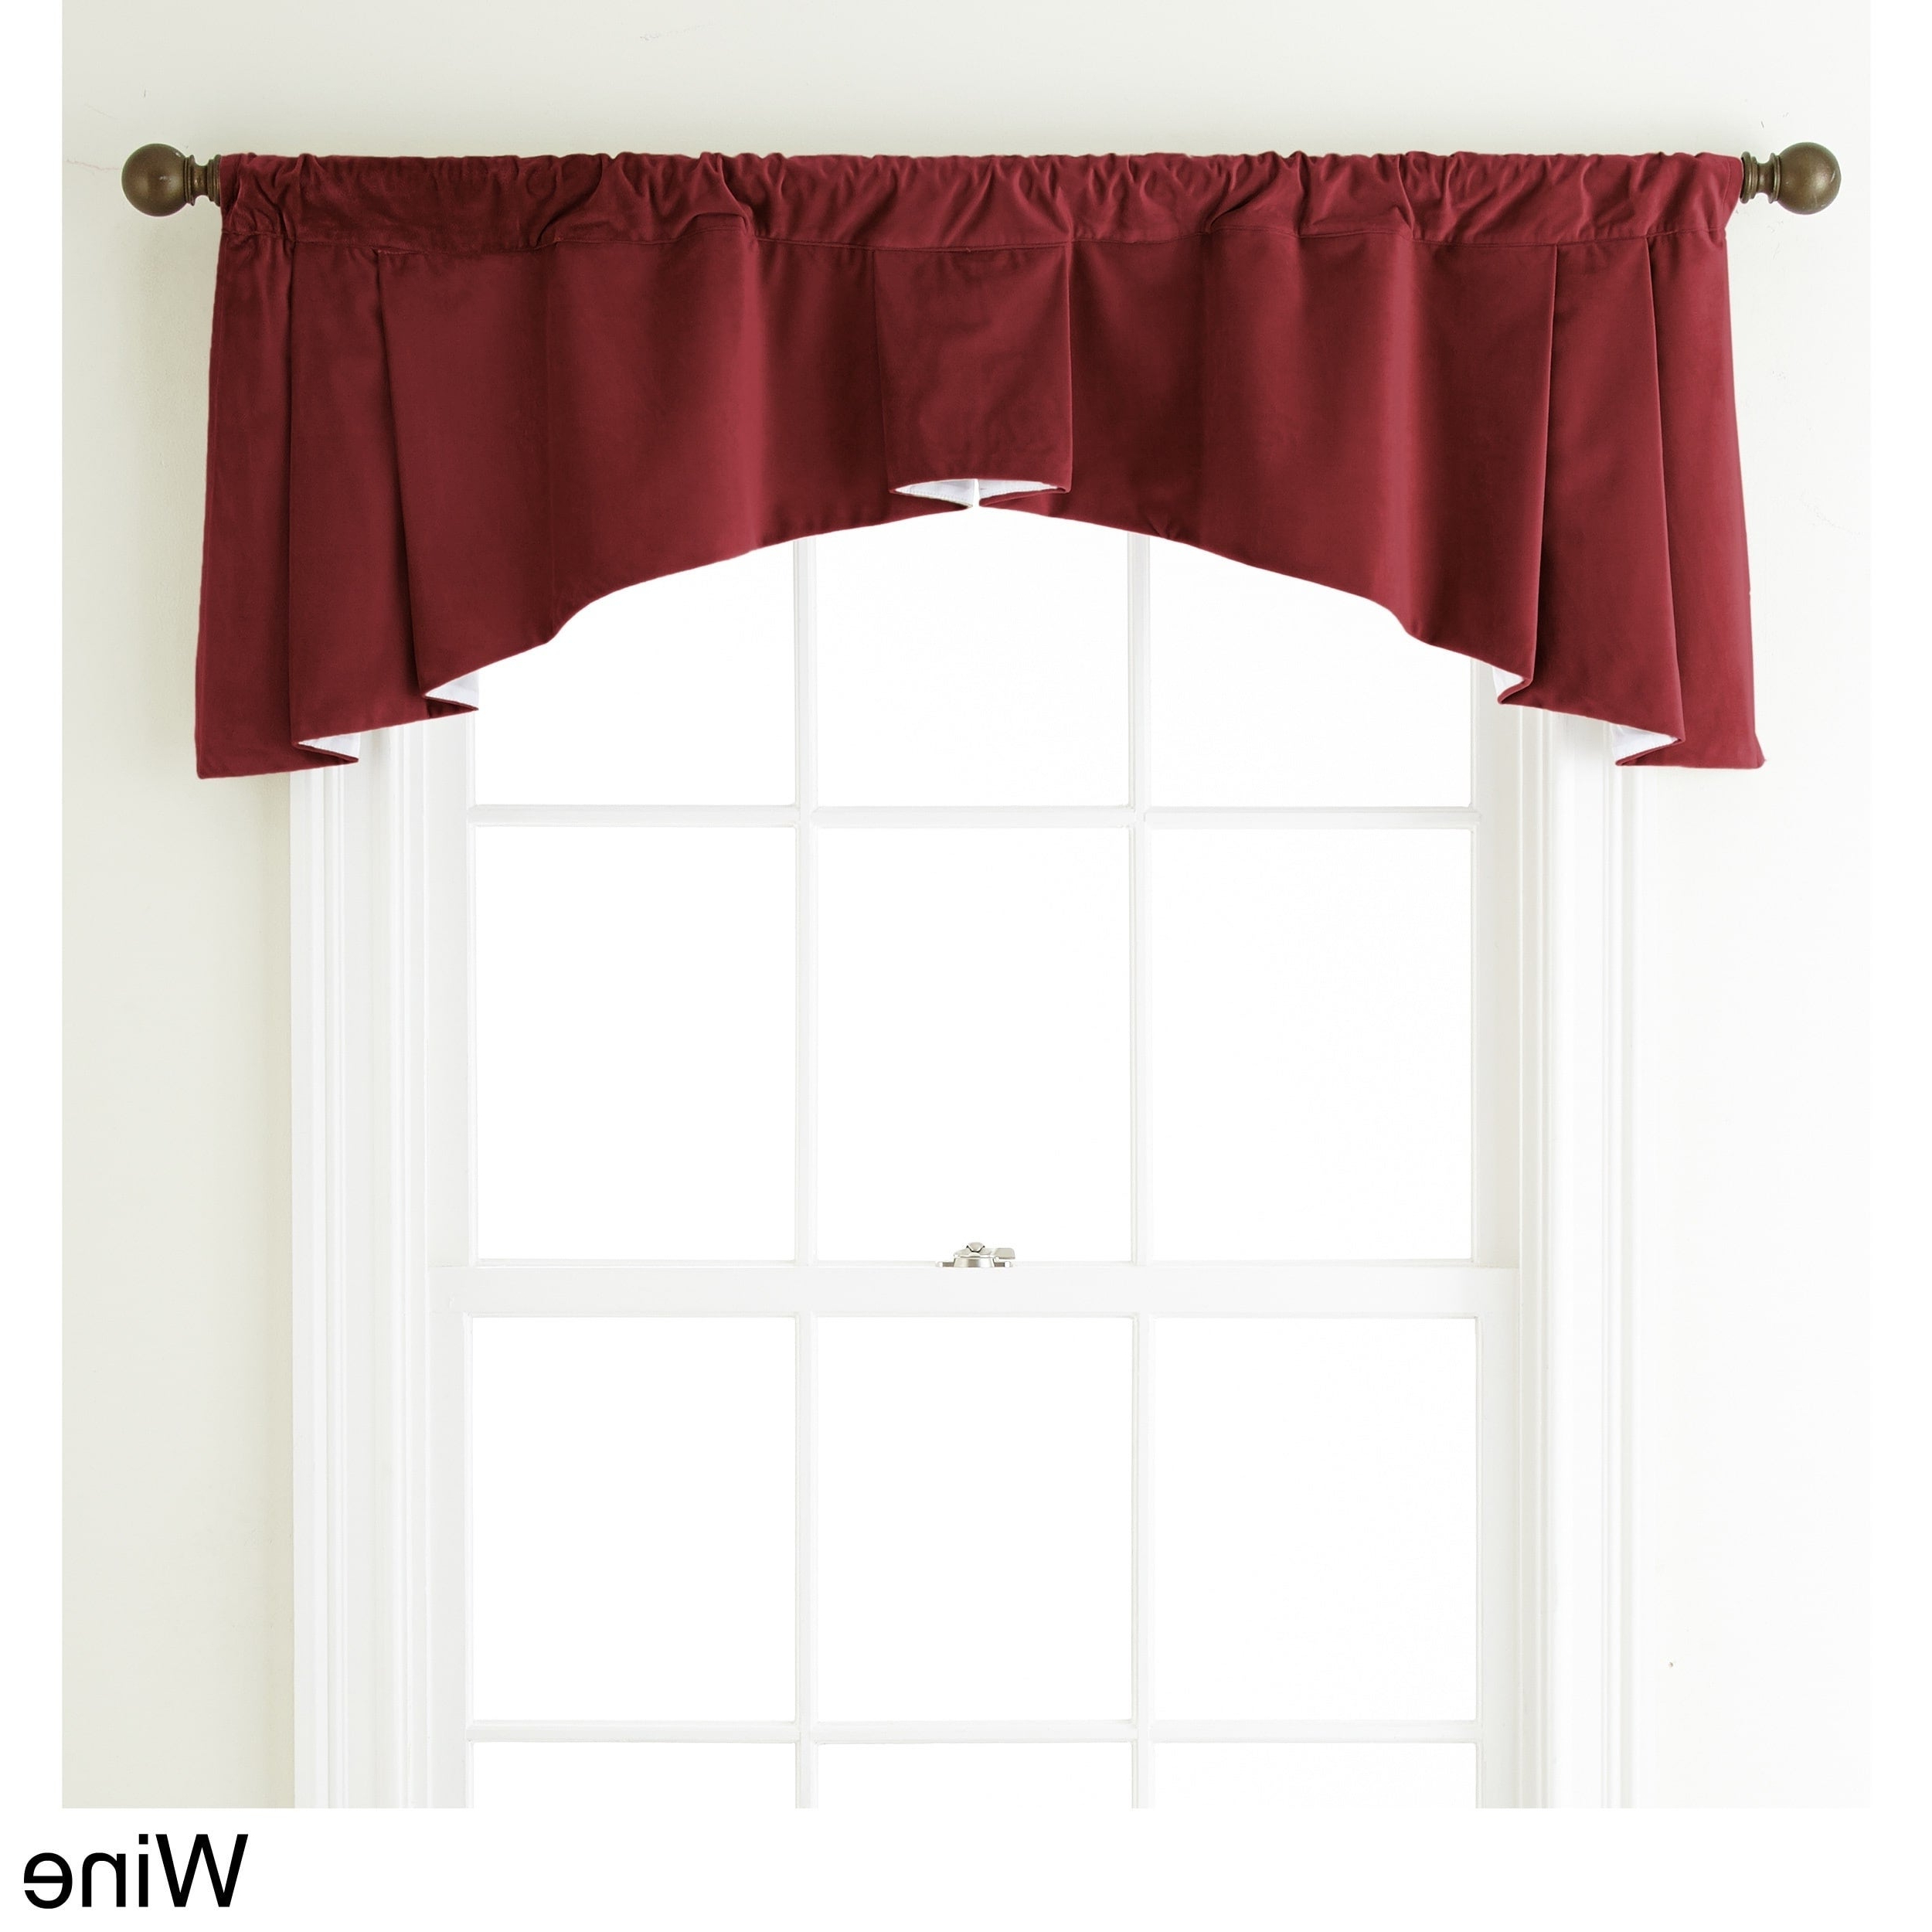 Latest Flinders Forge 30 Inch Tiers In Garnet Regarding Grand Avenue Remedy 54 X 20 Inch Solid Curtain Valance – 54 X (View 8 of 20)